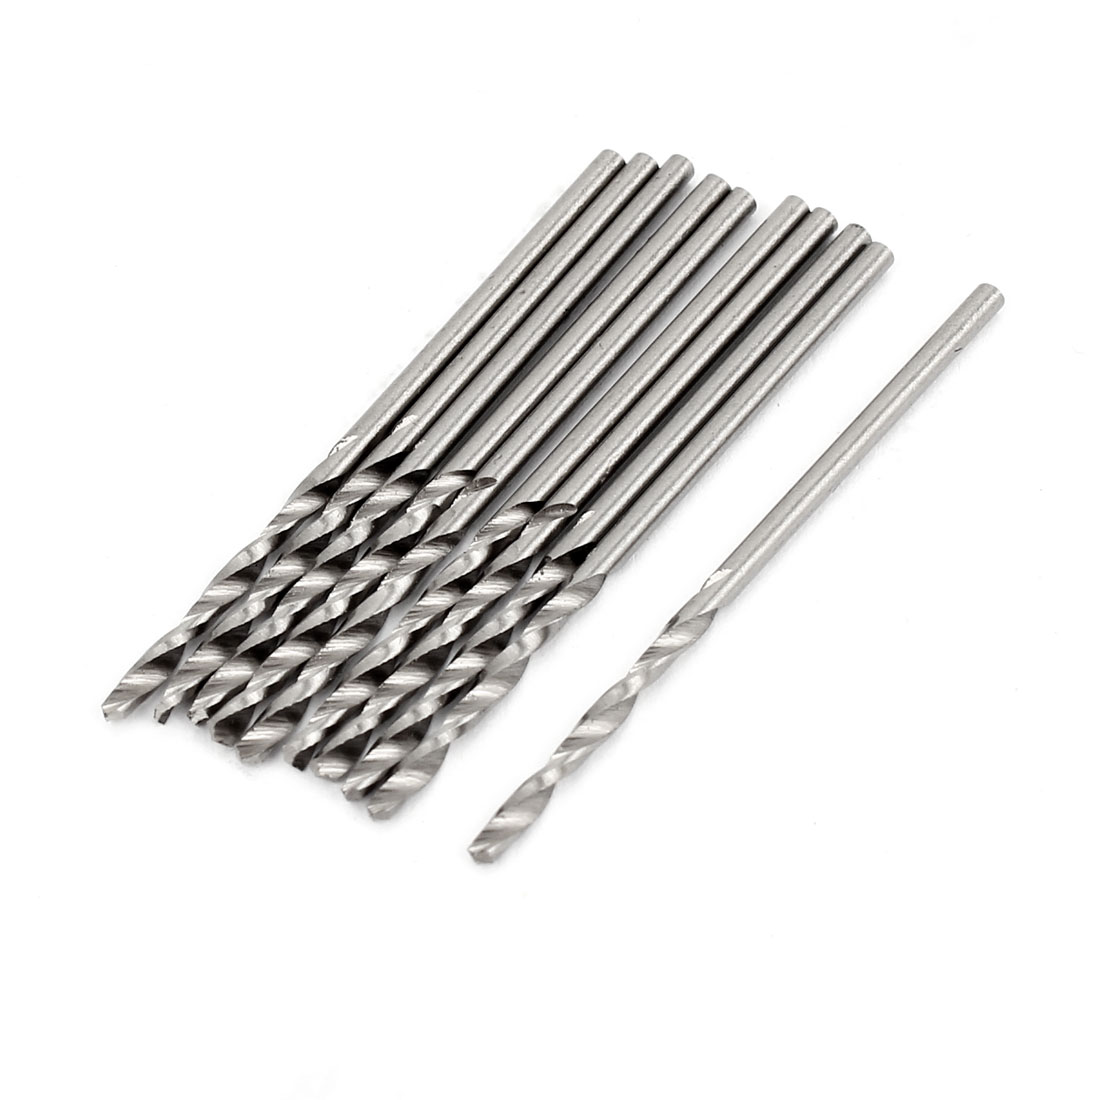 10 Pcs 17mm Length Flute 1.3mm Dia Metal Marble HSS Twist Drilling Drill Bit